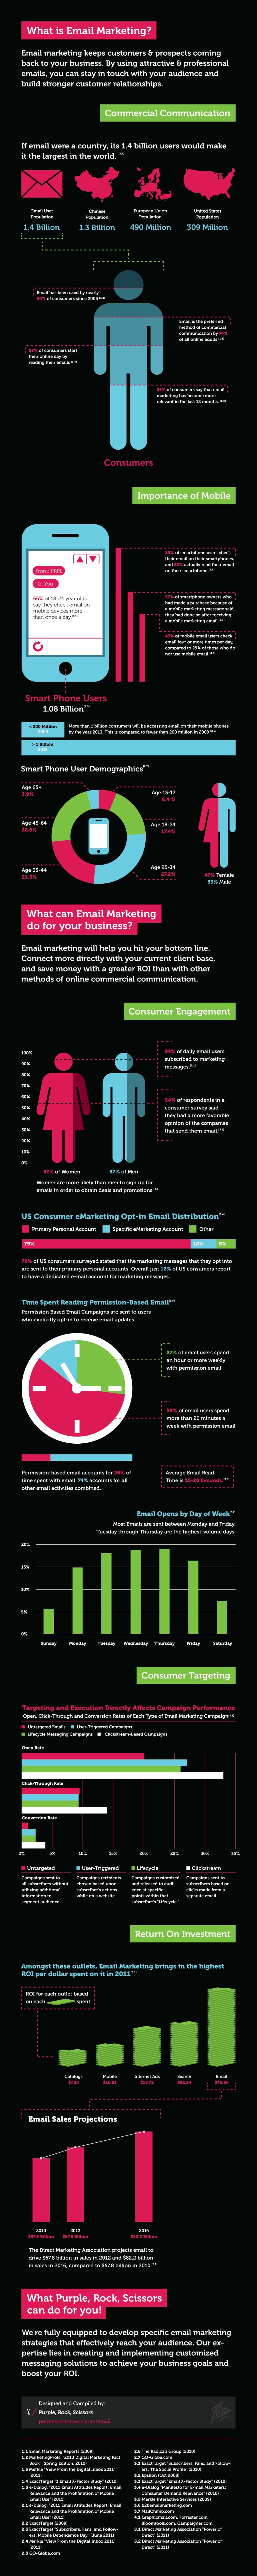 Email Marketing Practices Explained [Infographic]